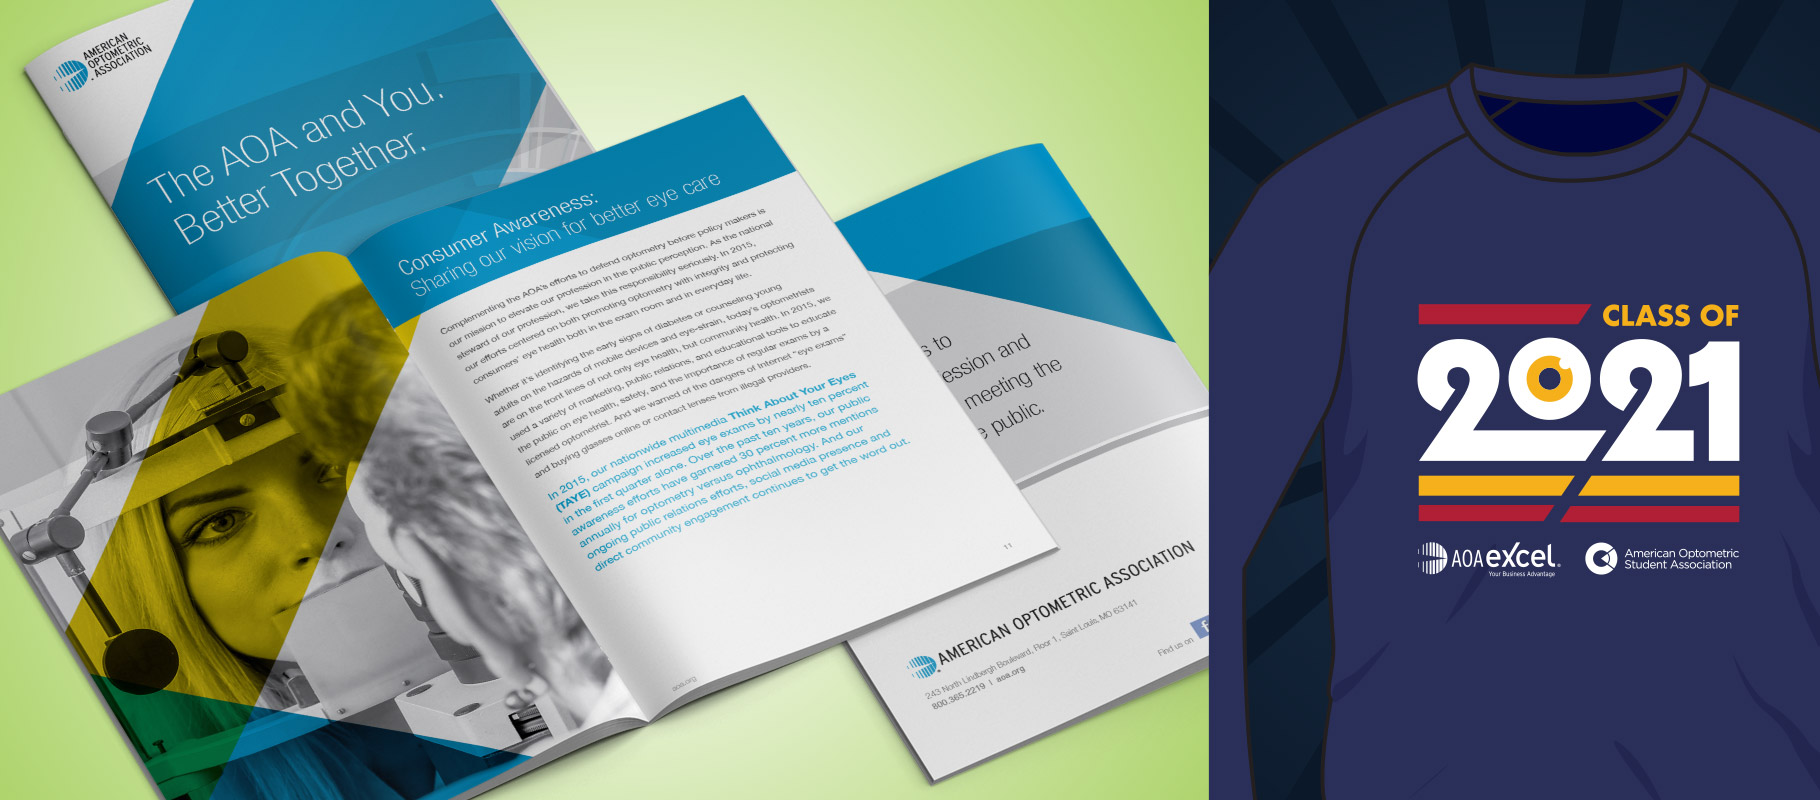 American Optometric Association member guide and AOAExcel t-shirt design